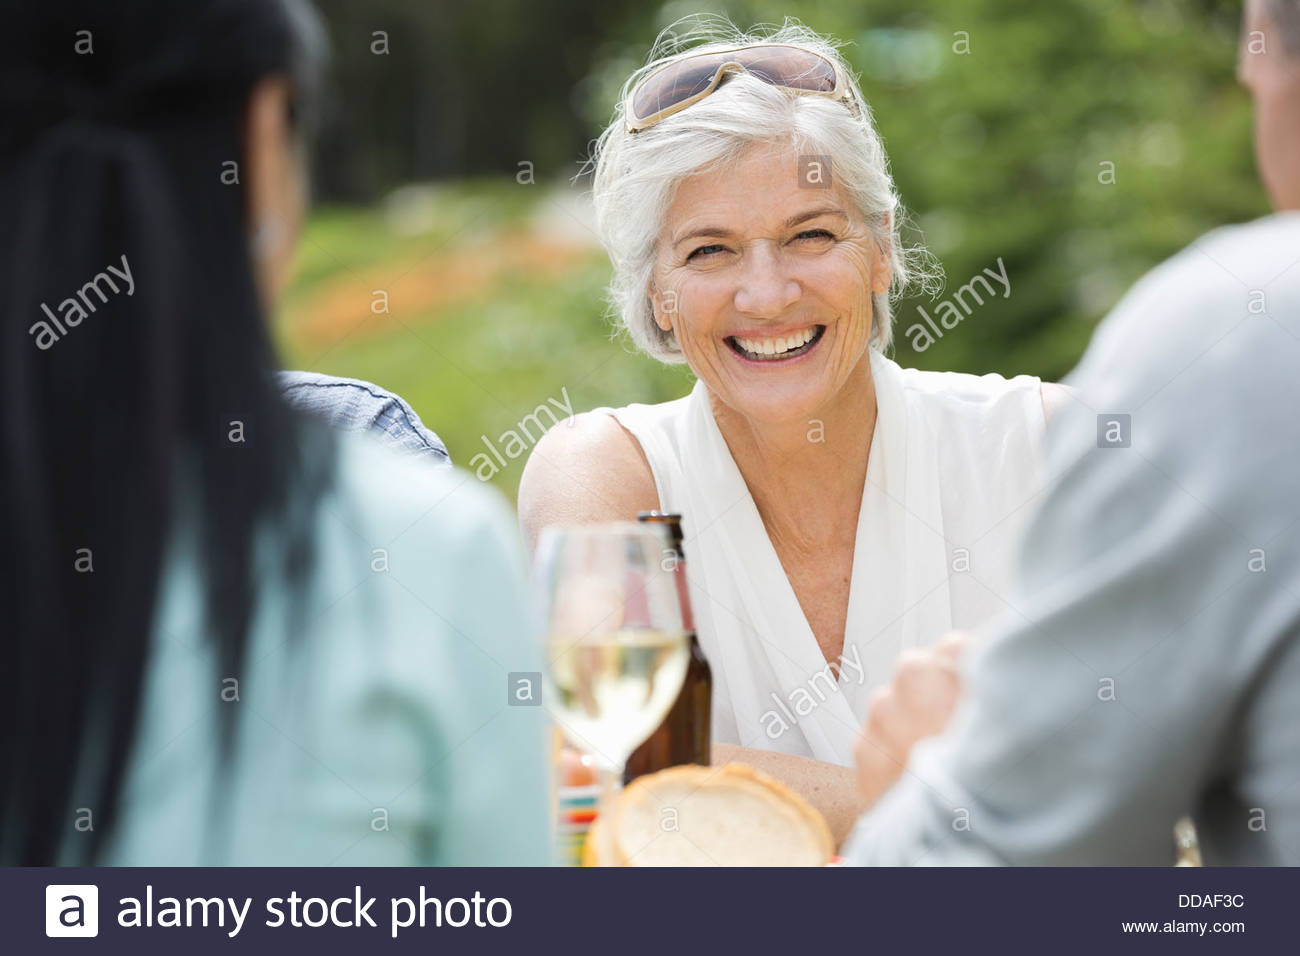 Mature woman smiling outdoors among friends - Stock Image